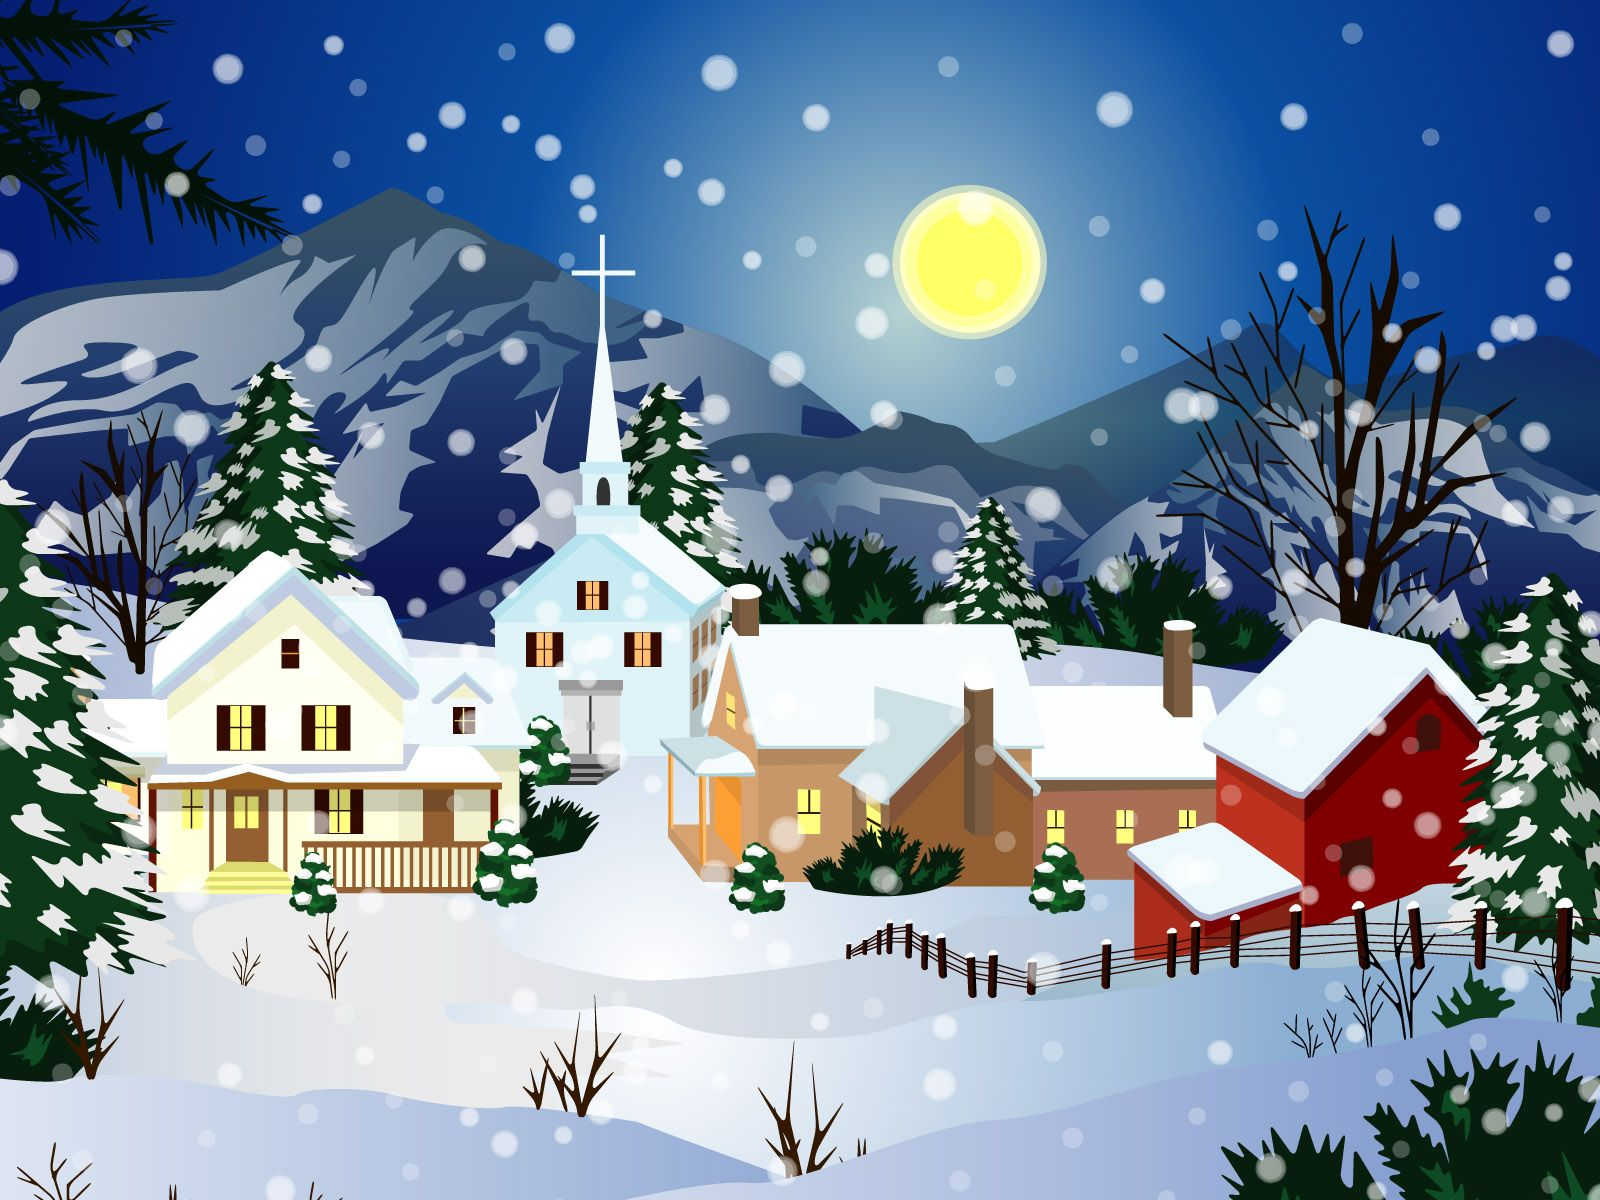 25 Best Colorful Christmas Wallpapers: 2014 | Christmas wallpaper ...